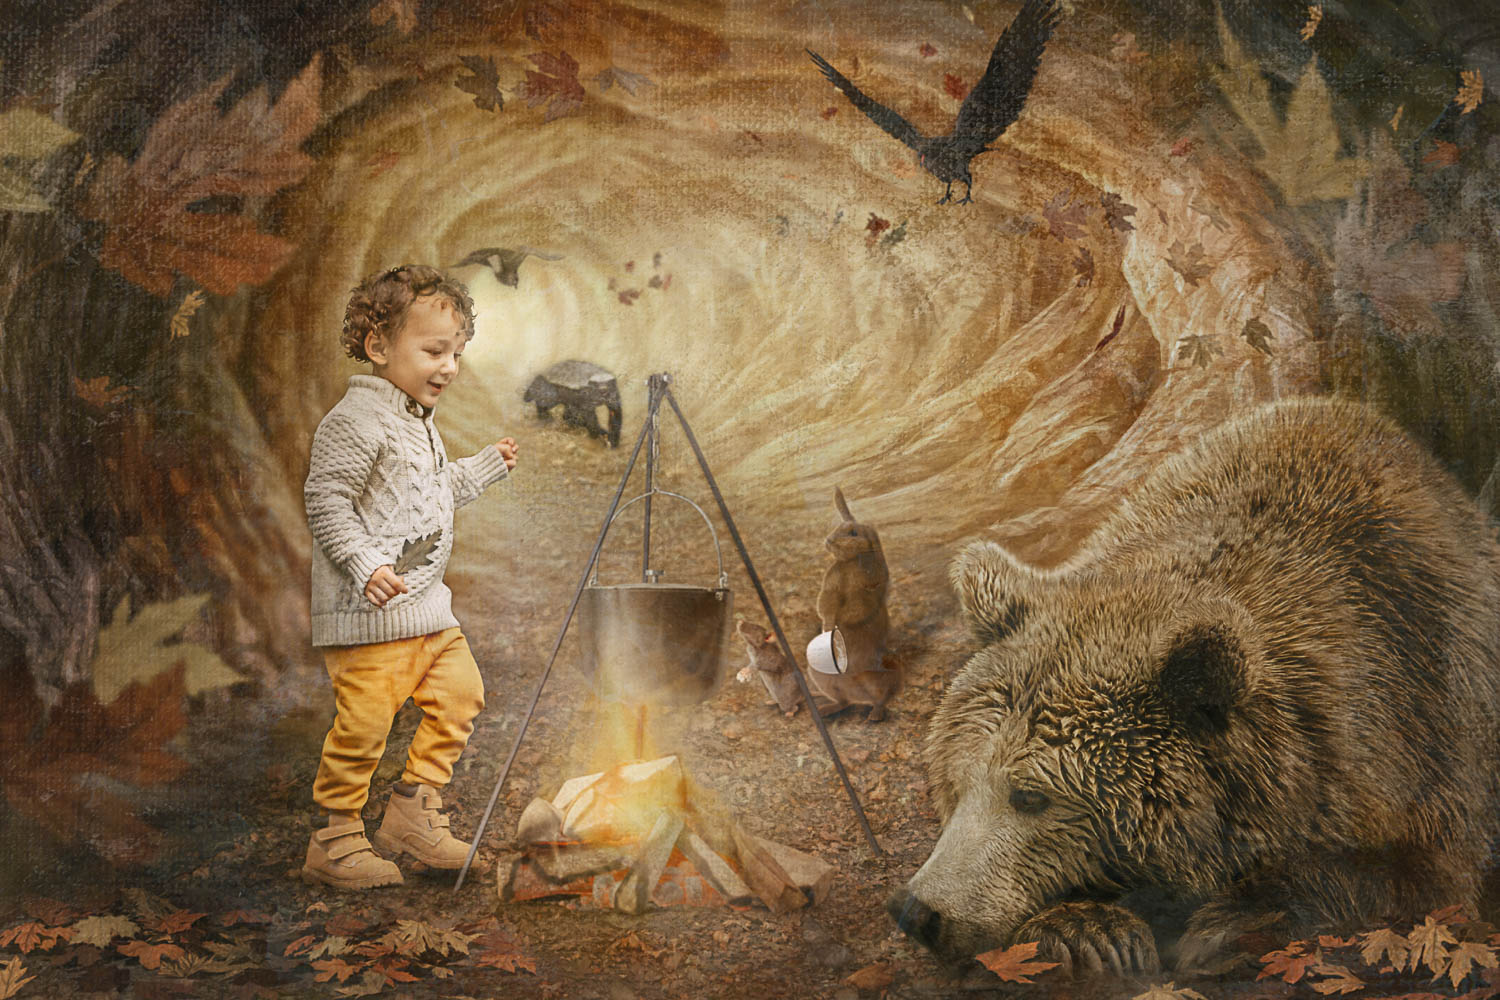 little boy in a cave with a sleepy bear storybook composite